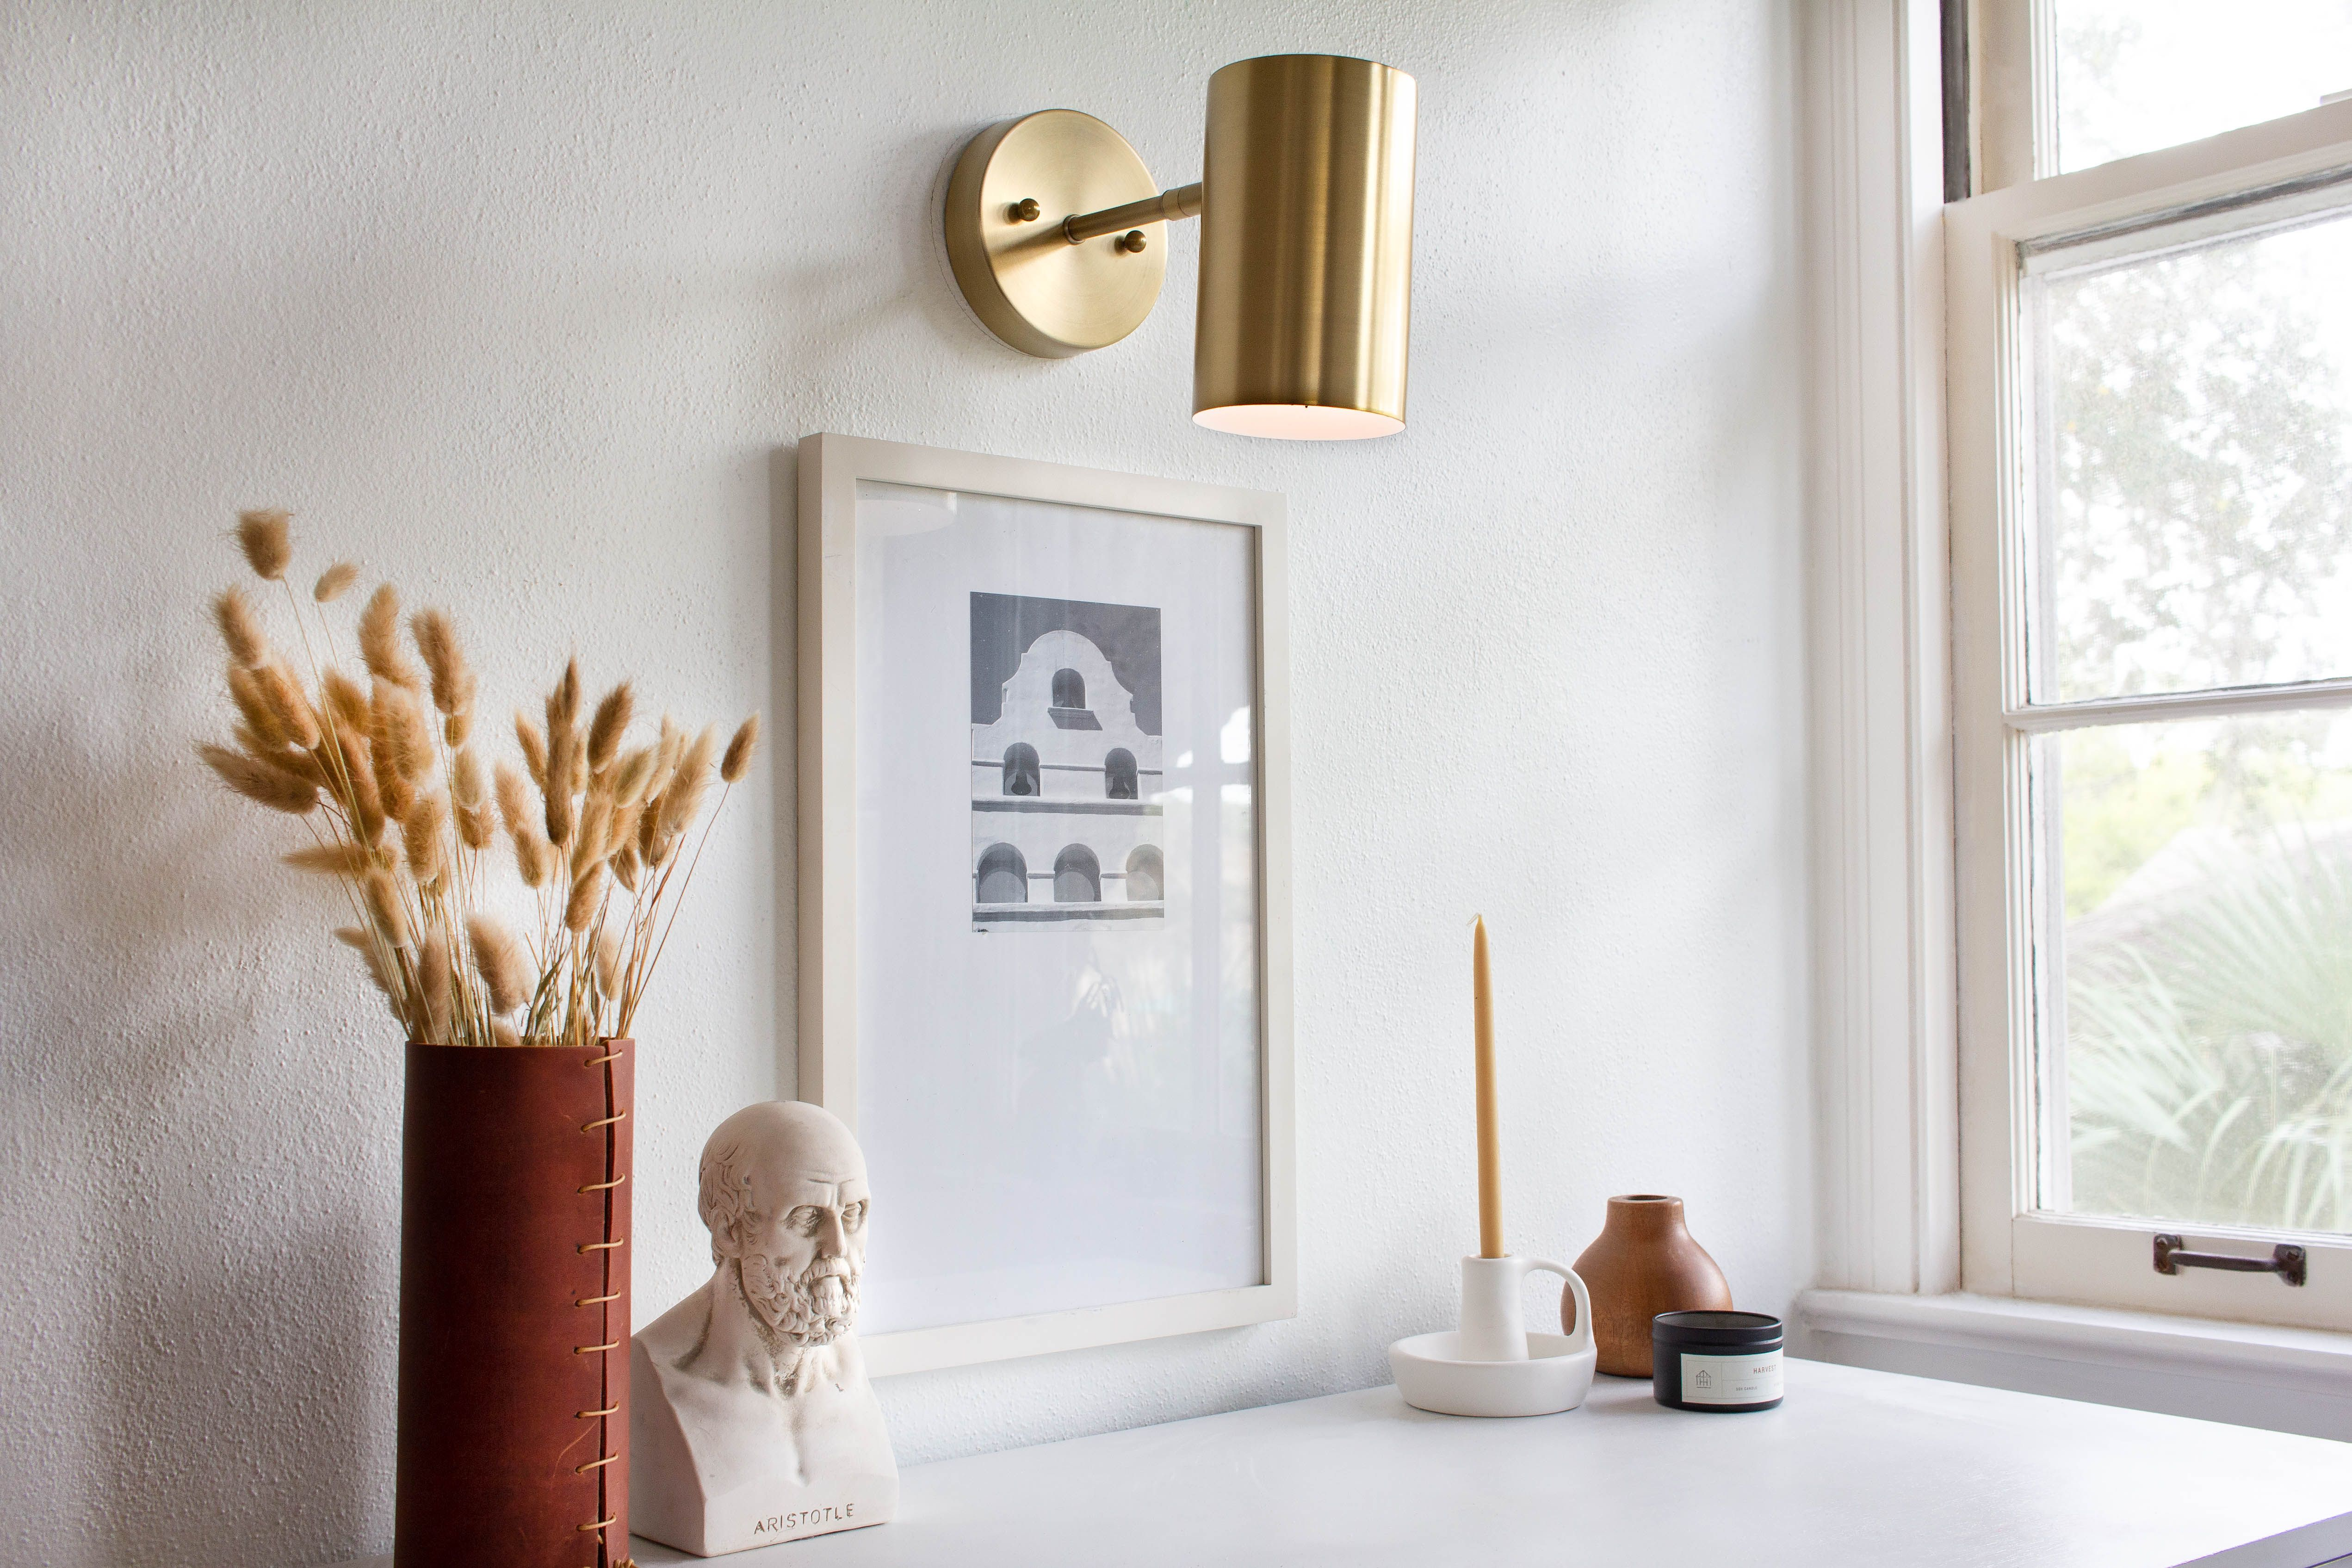 Genius Wall Sconce Hack, No Electricity Required | Hunker ... on Sconces No Electric Power id=42344